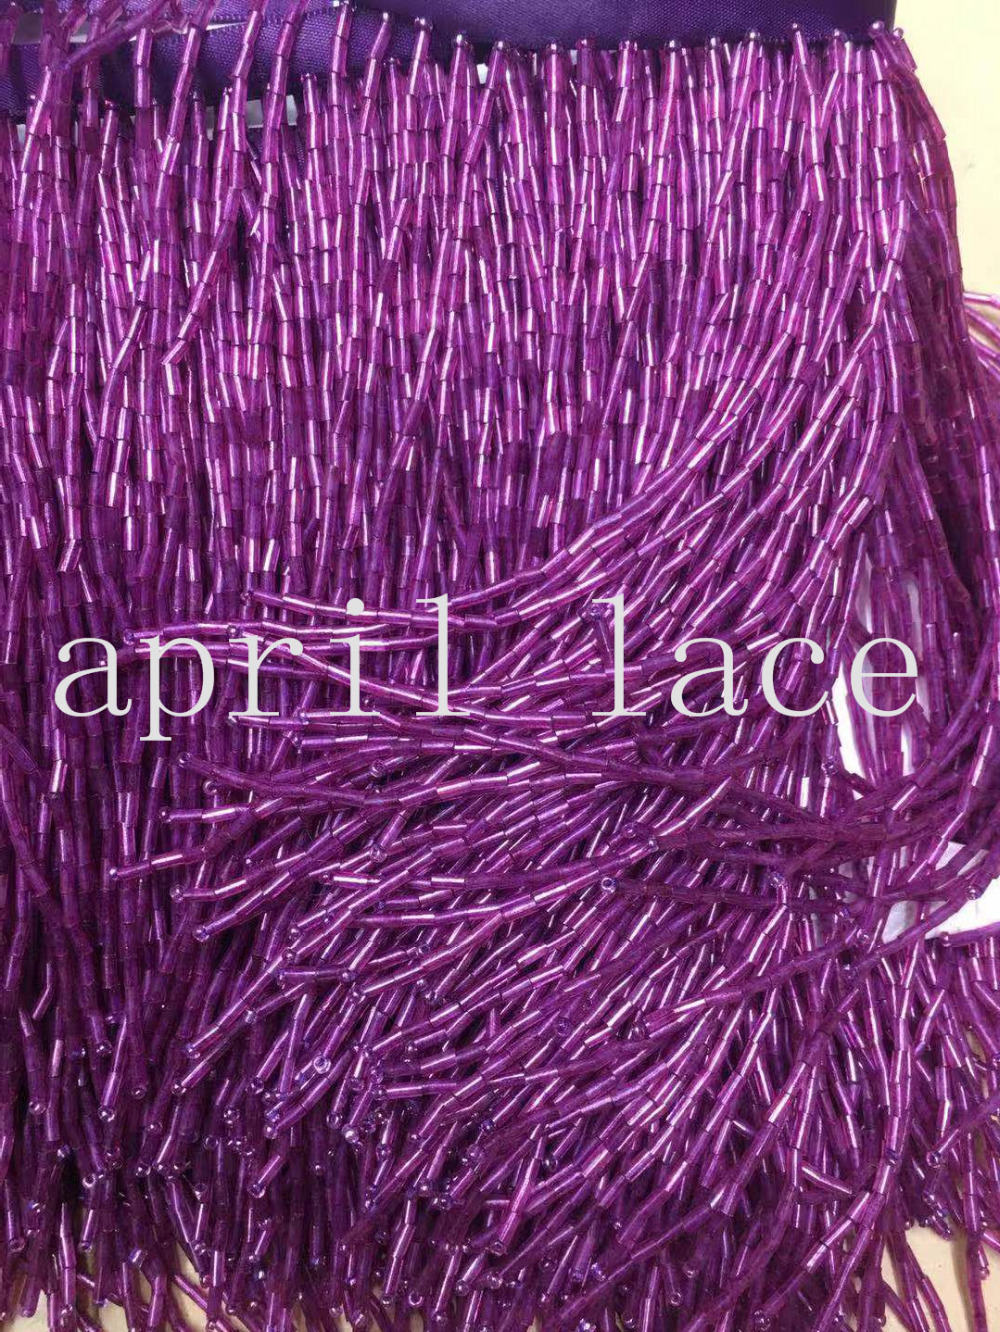 5yards cc005 # 14 15cm width purple beads fringe satin ribbon tassel for garment/decorative/home /wedding bridal gown dress